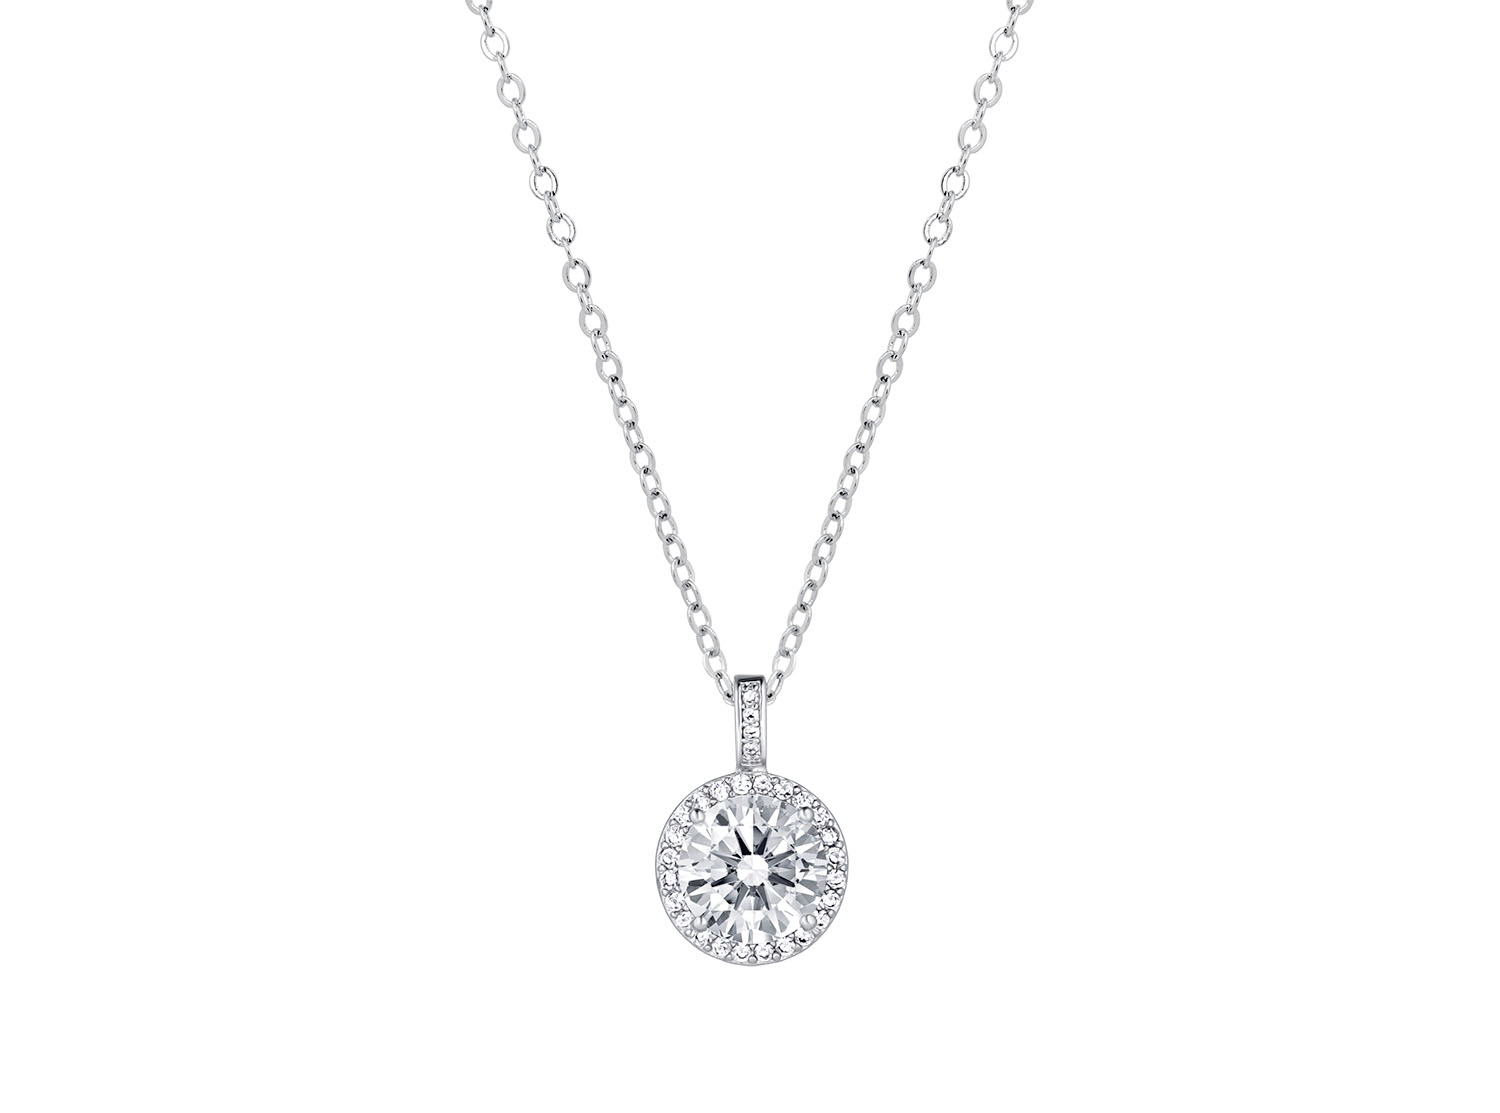 Daily Luxury Necklace VI Silver